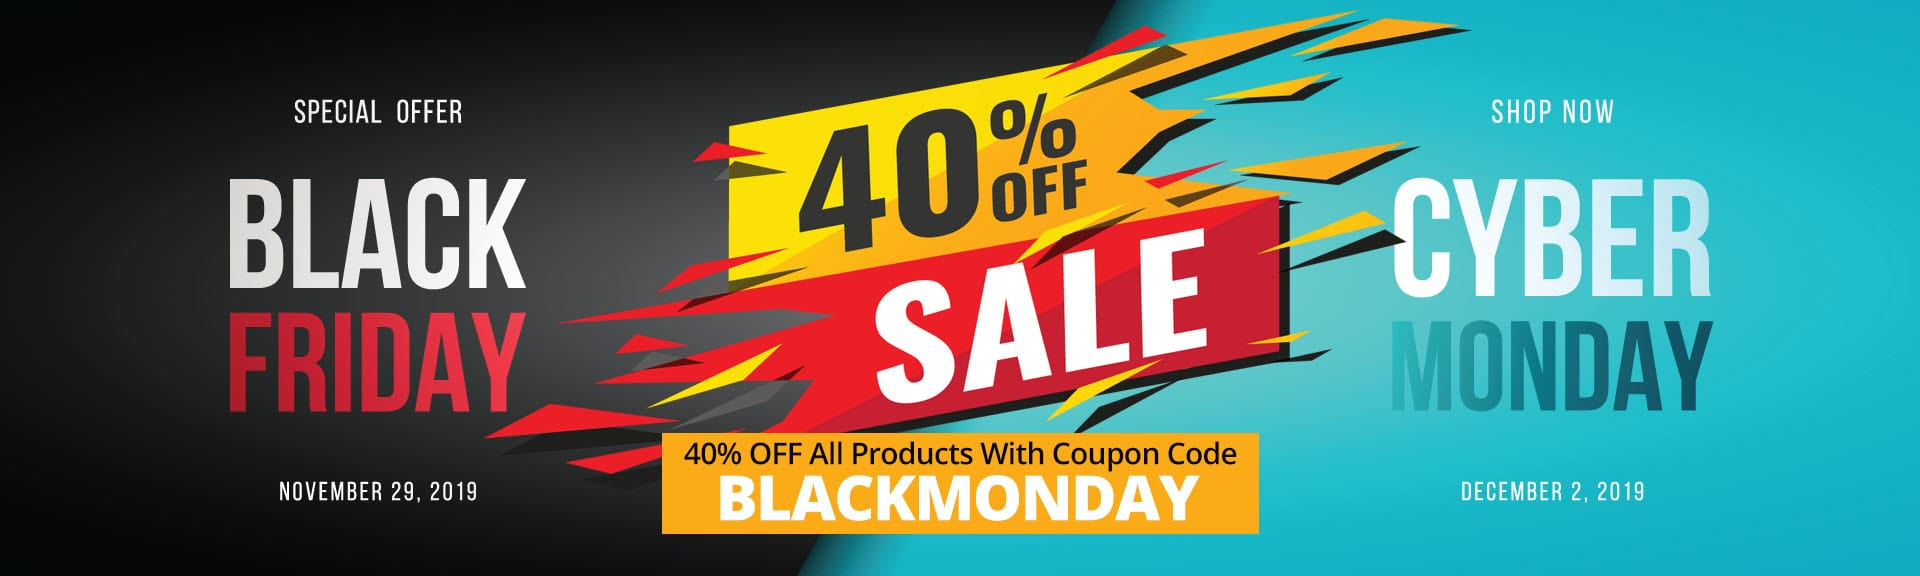 black friday and cyber monday sale banner